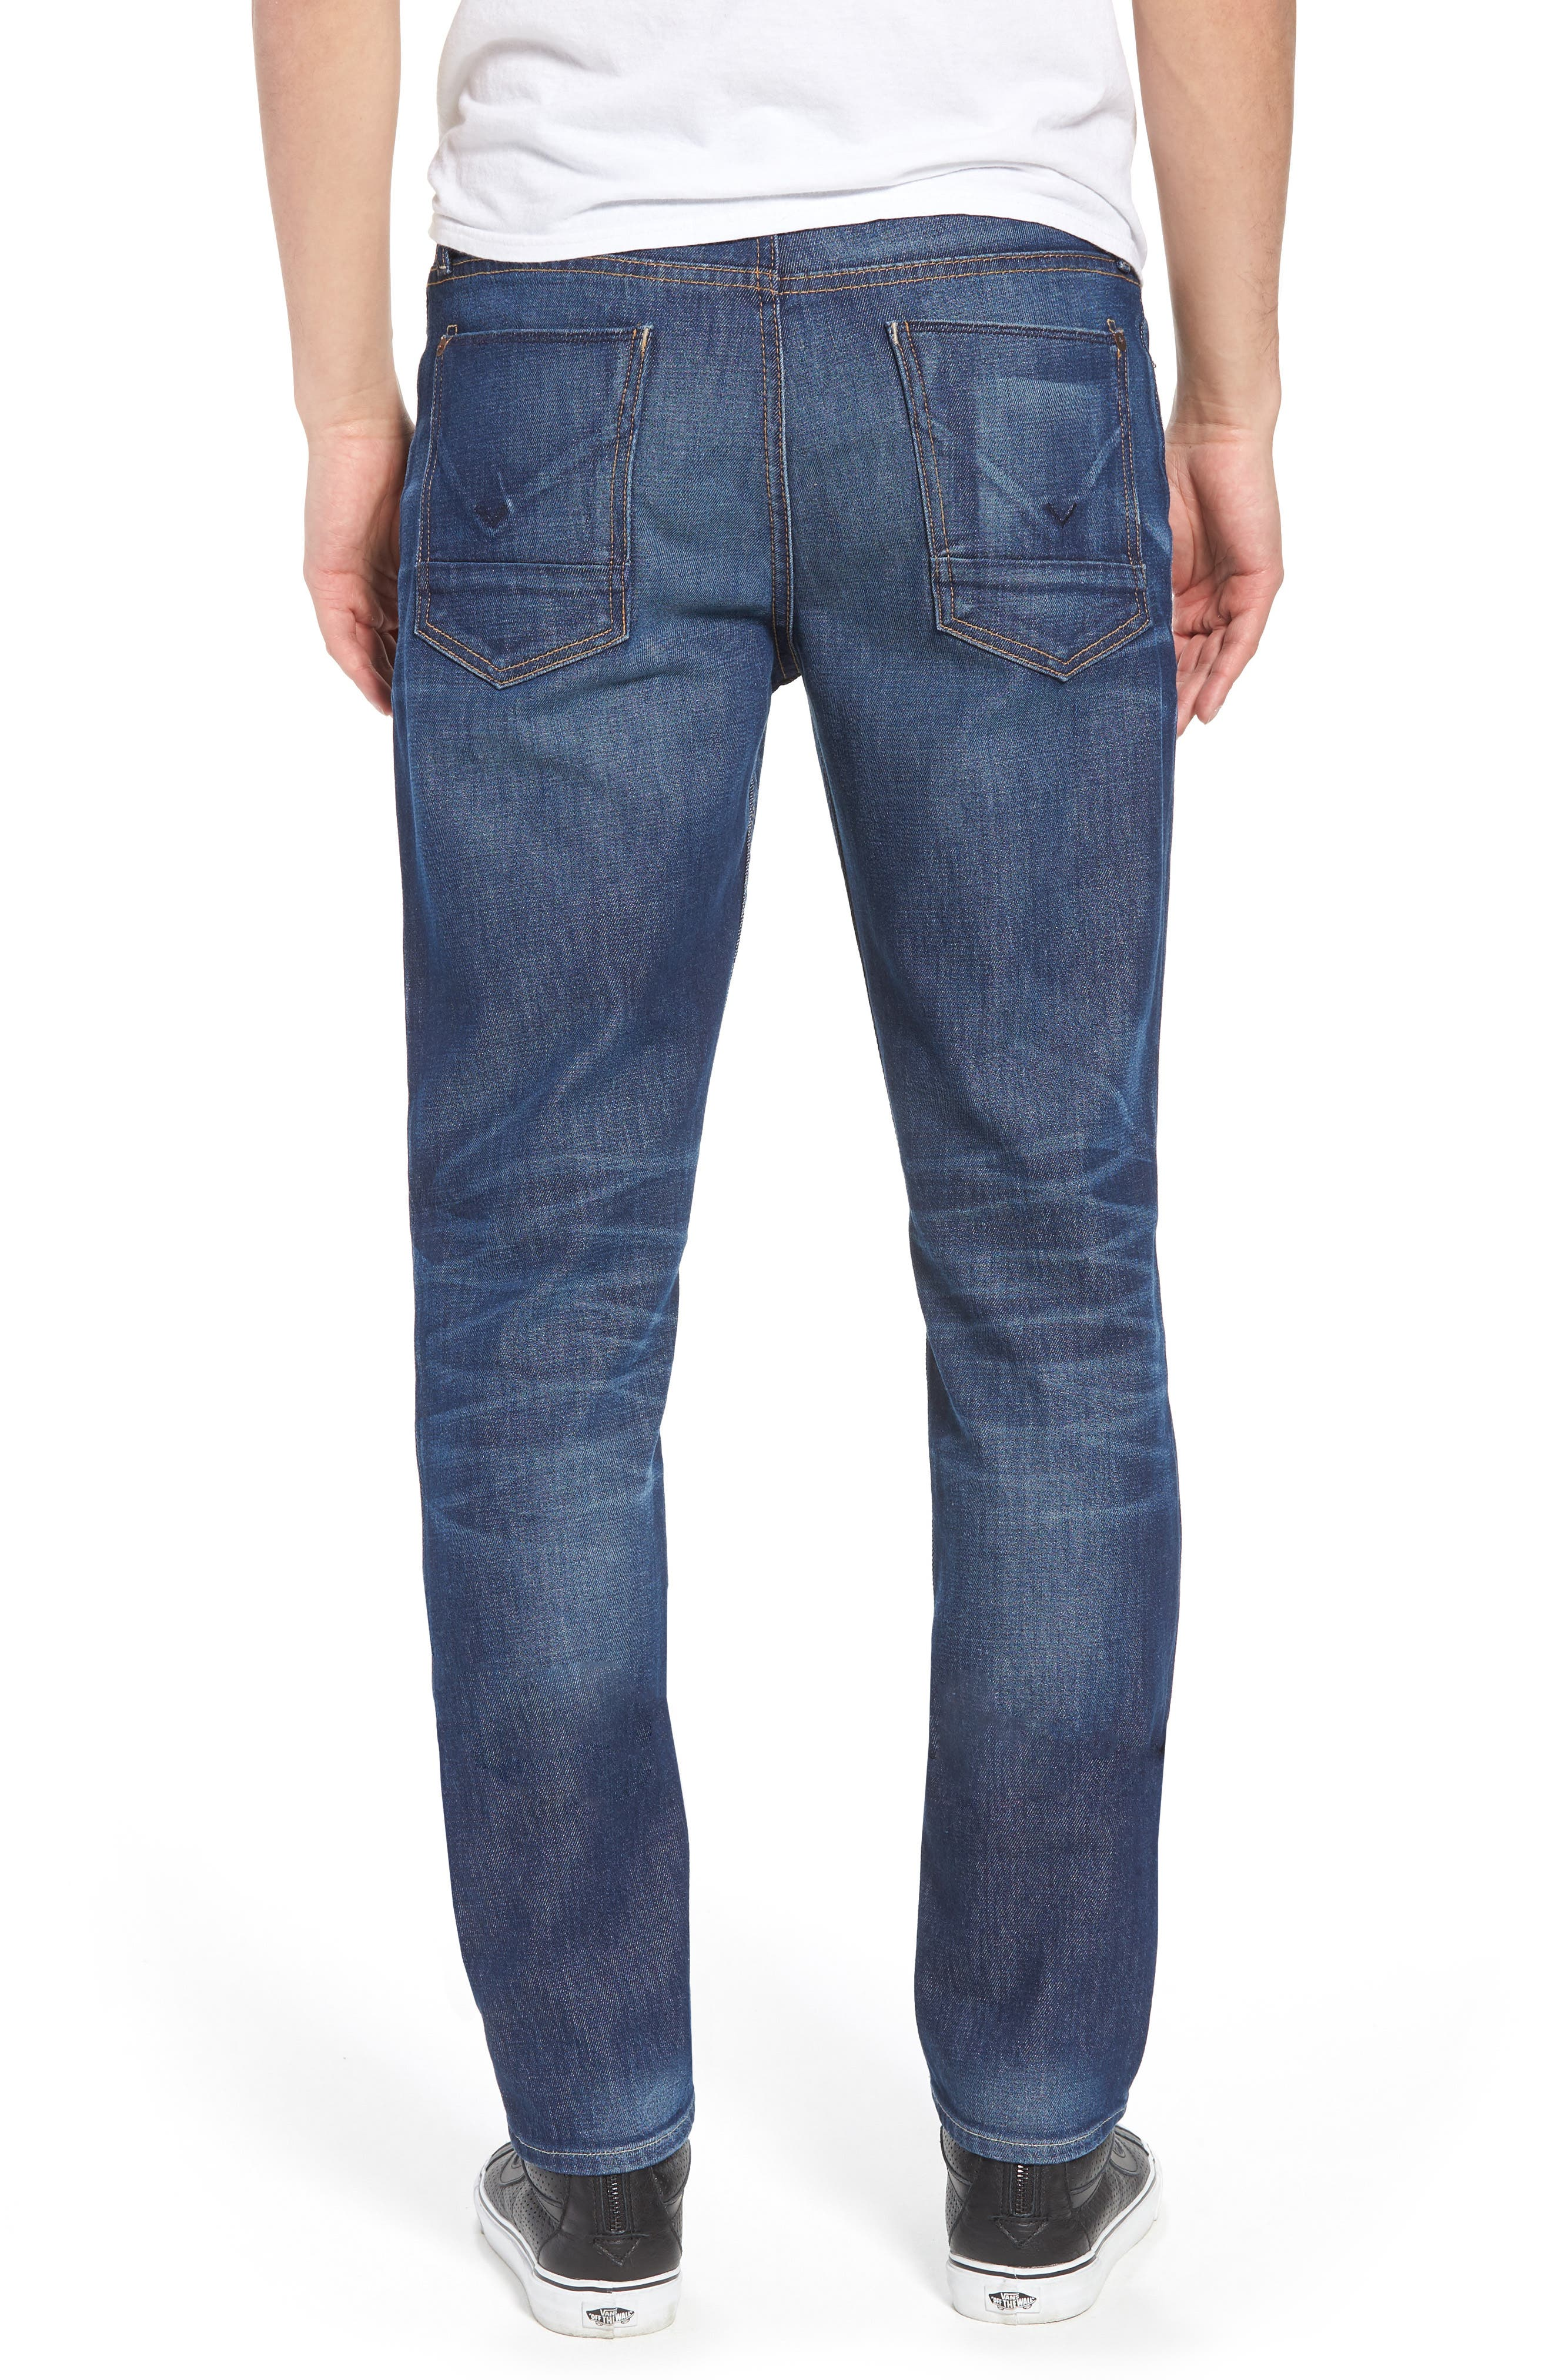 Axl Skinny Fit Jeans,                             Alternate thumbnail 2, color,                             Ignites